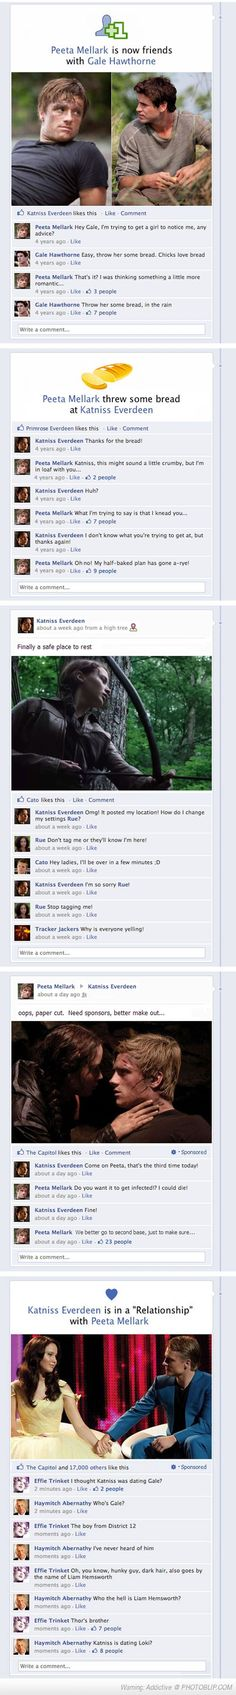 Hunger Games On Facebook....